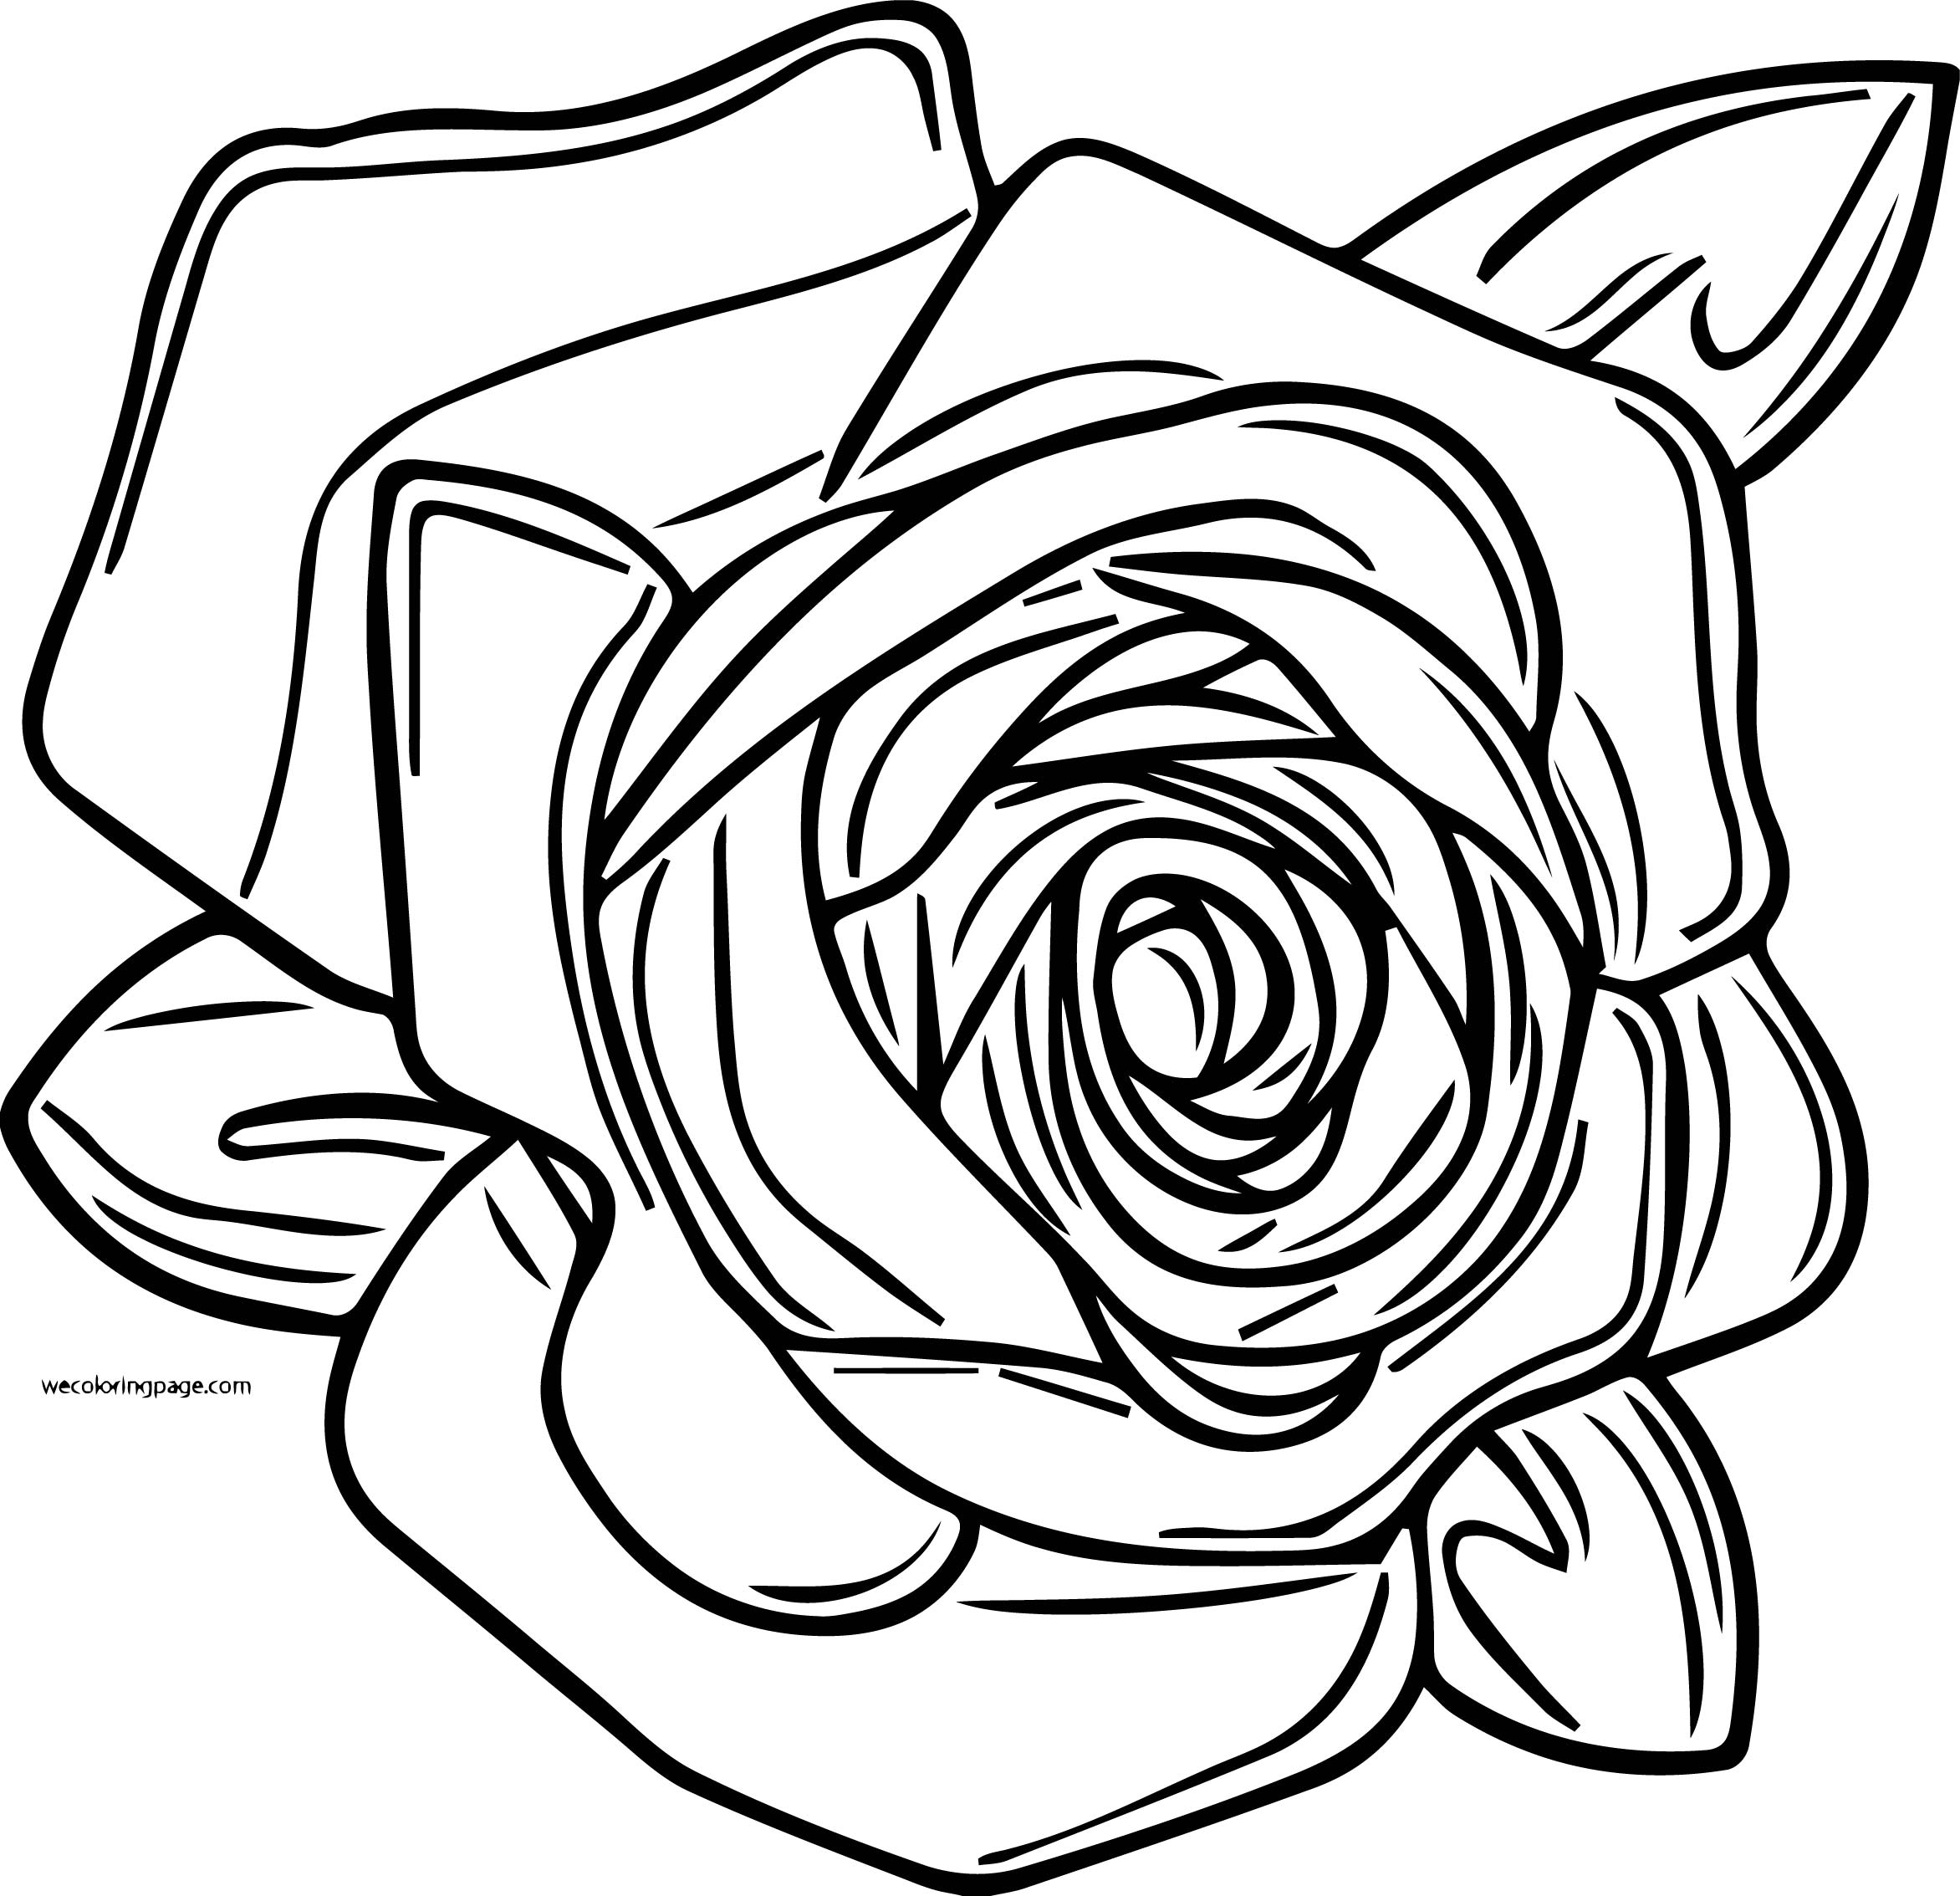 Rose Coloring Page 03